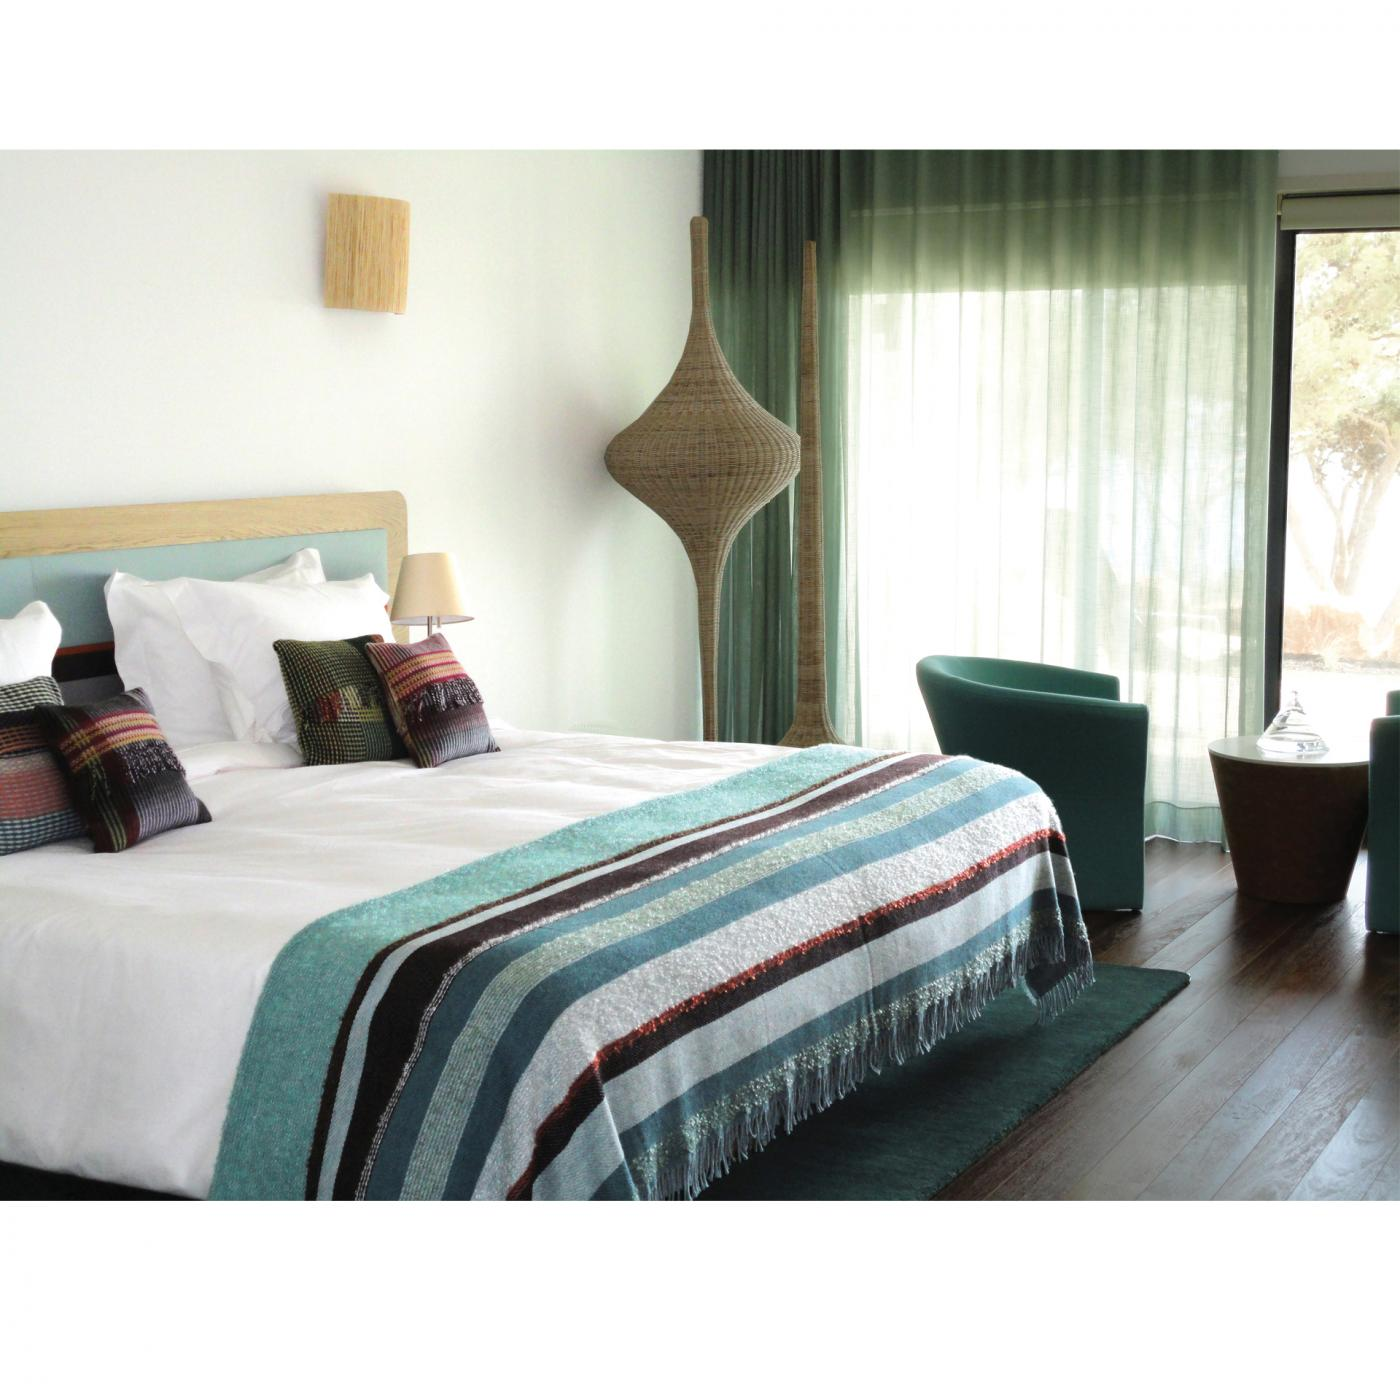 Martinhal Resort – Hotel bedspreads